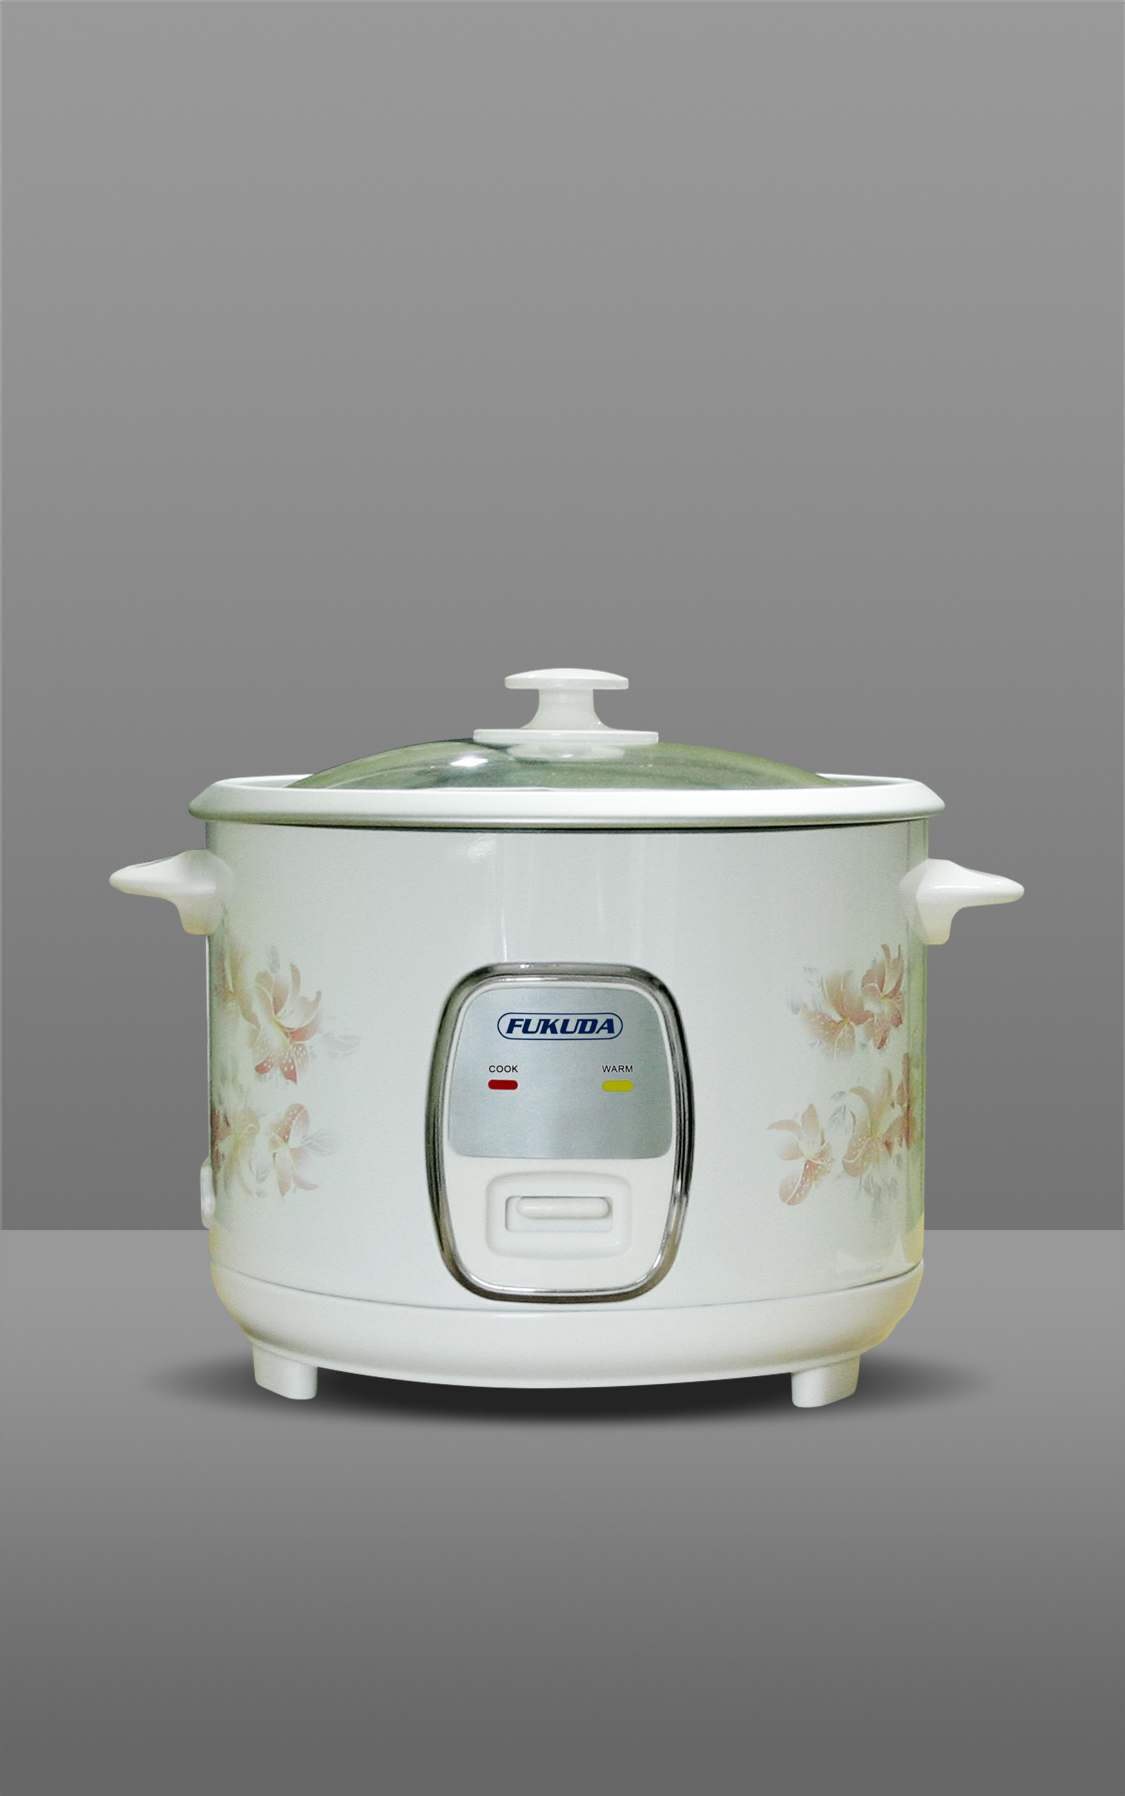 10 CUPS RICE COOKER & WARMER 1.8L